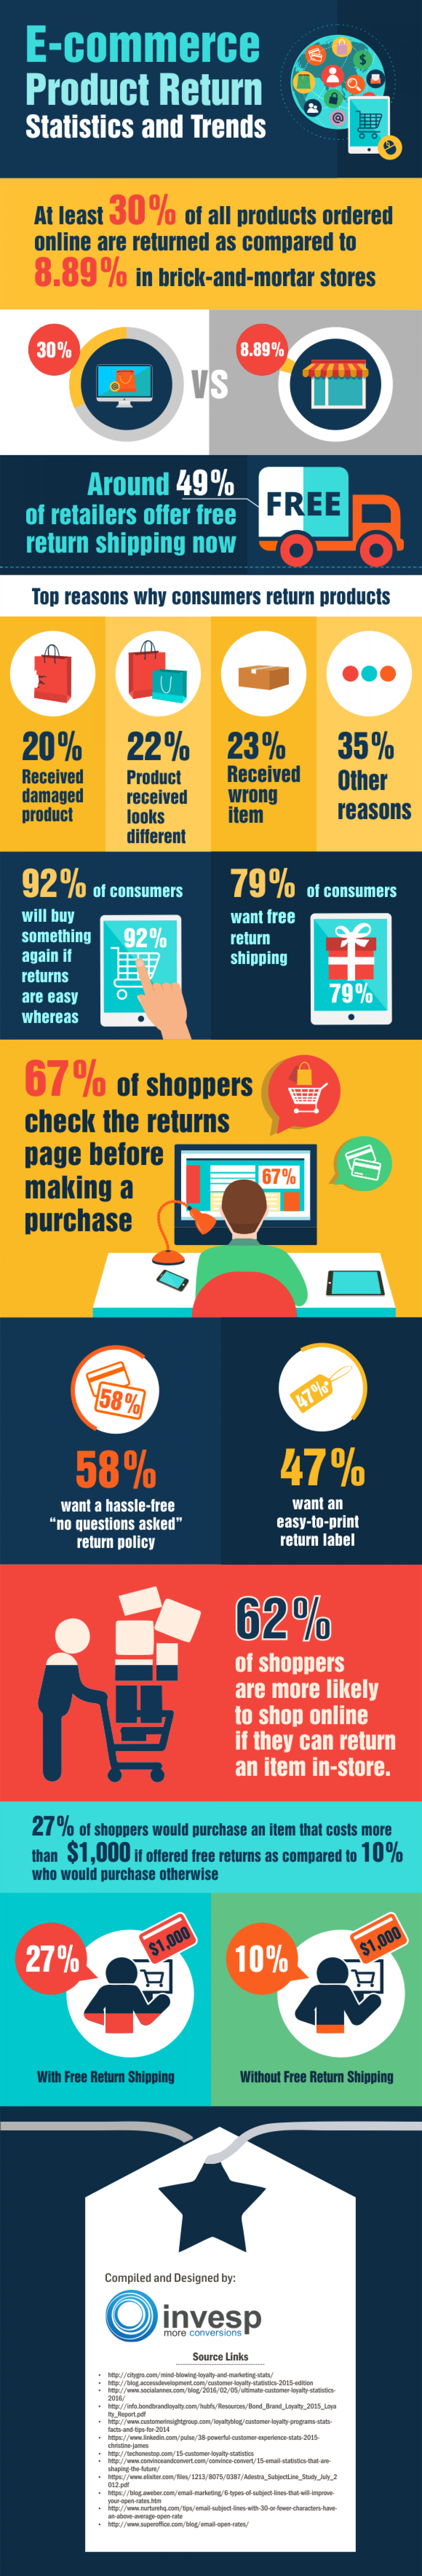 E-commerce Product Return Rate Statistics and Trends  Infographic